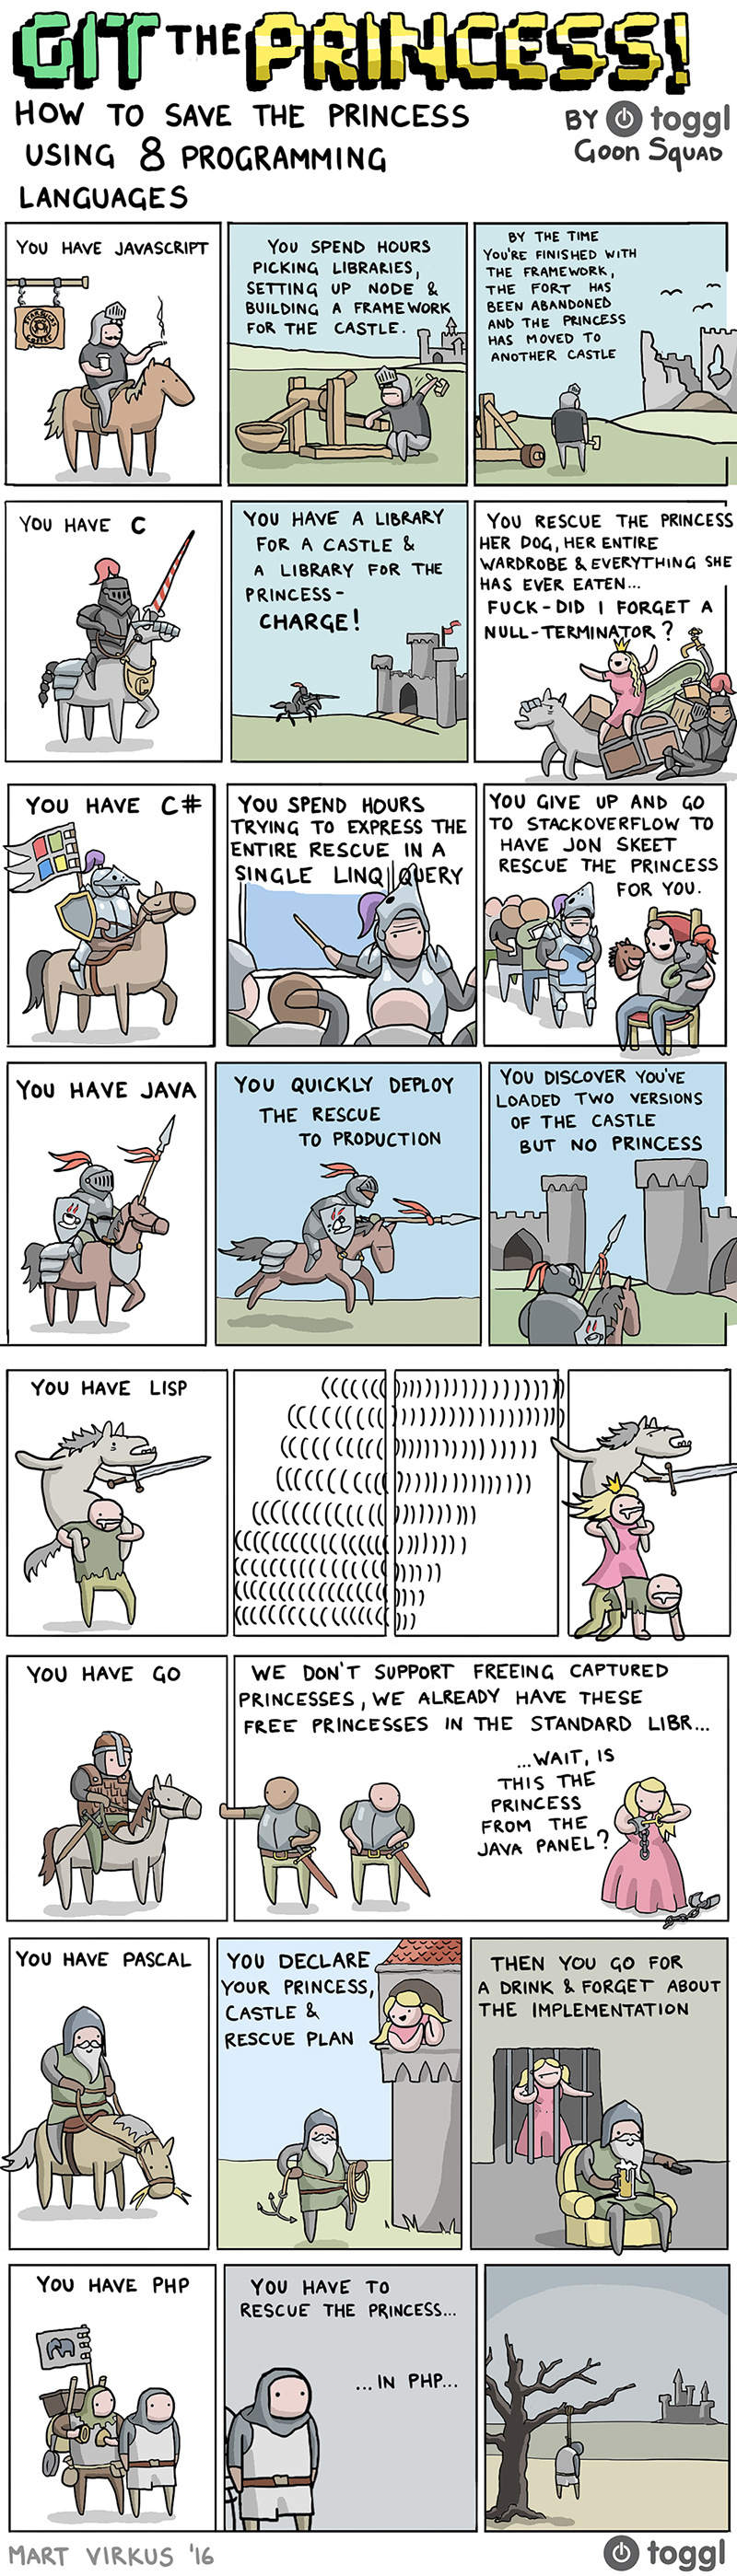 How to save the princess in 8 programming languages